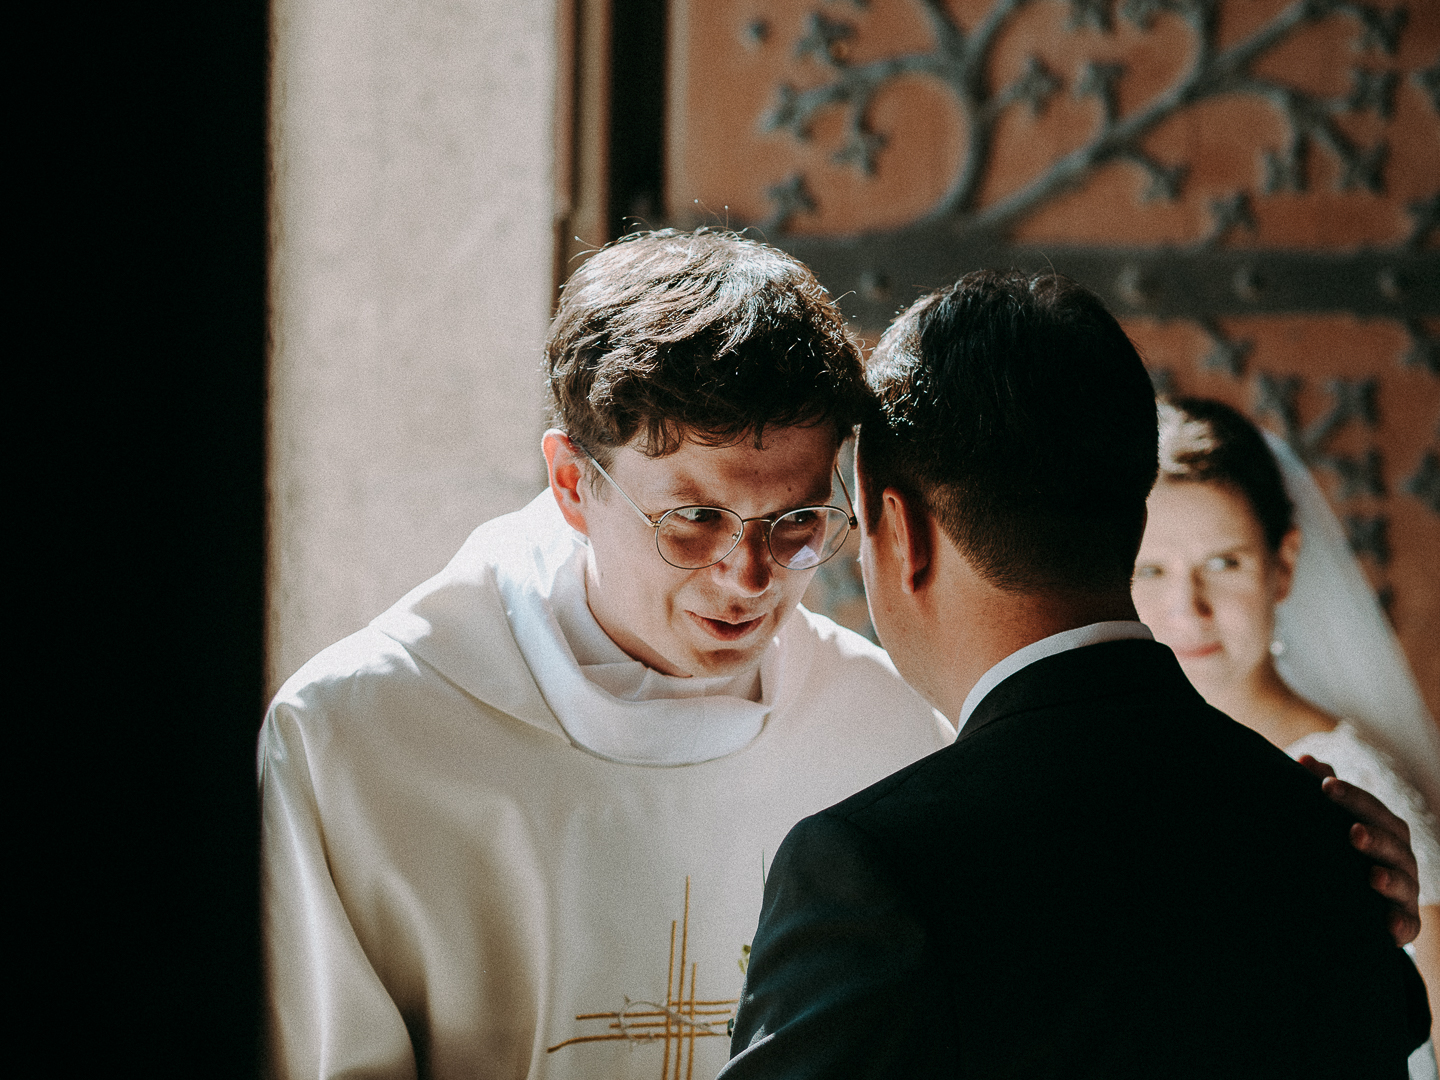 catholic wedding photo